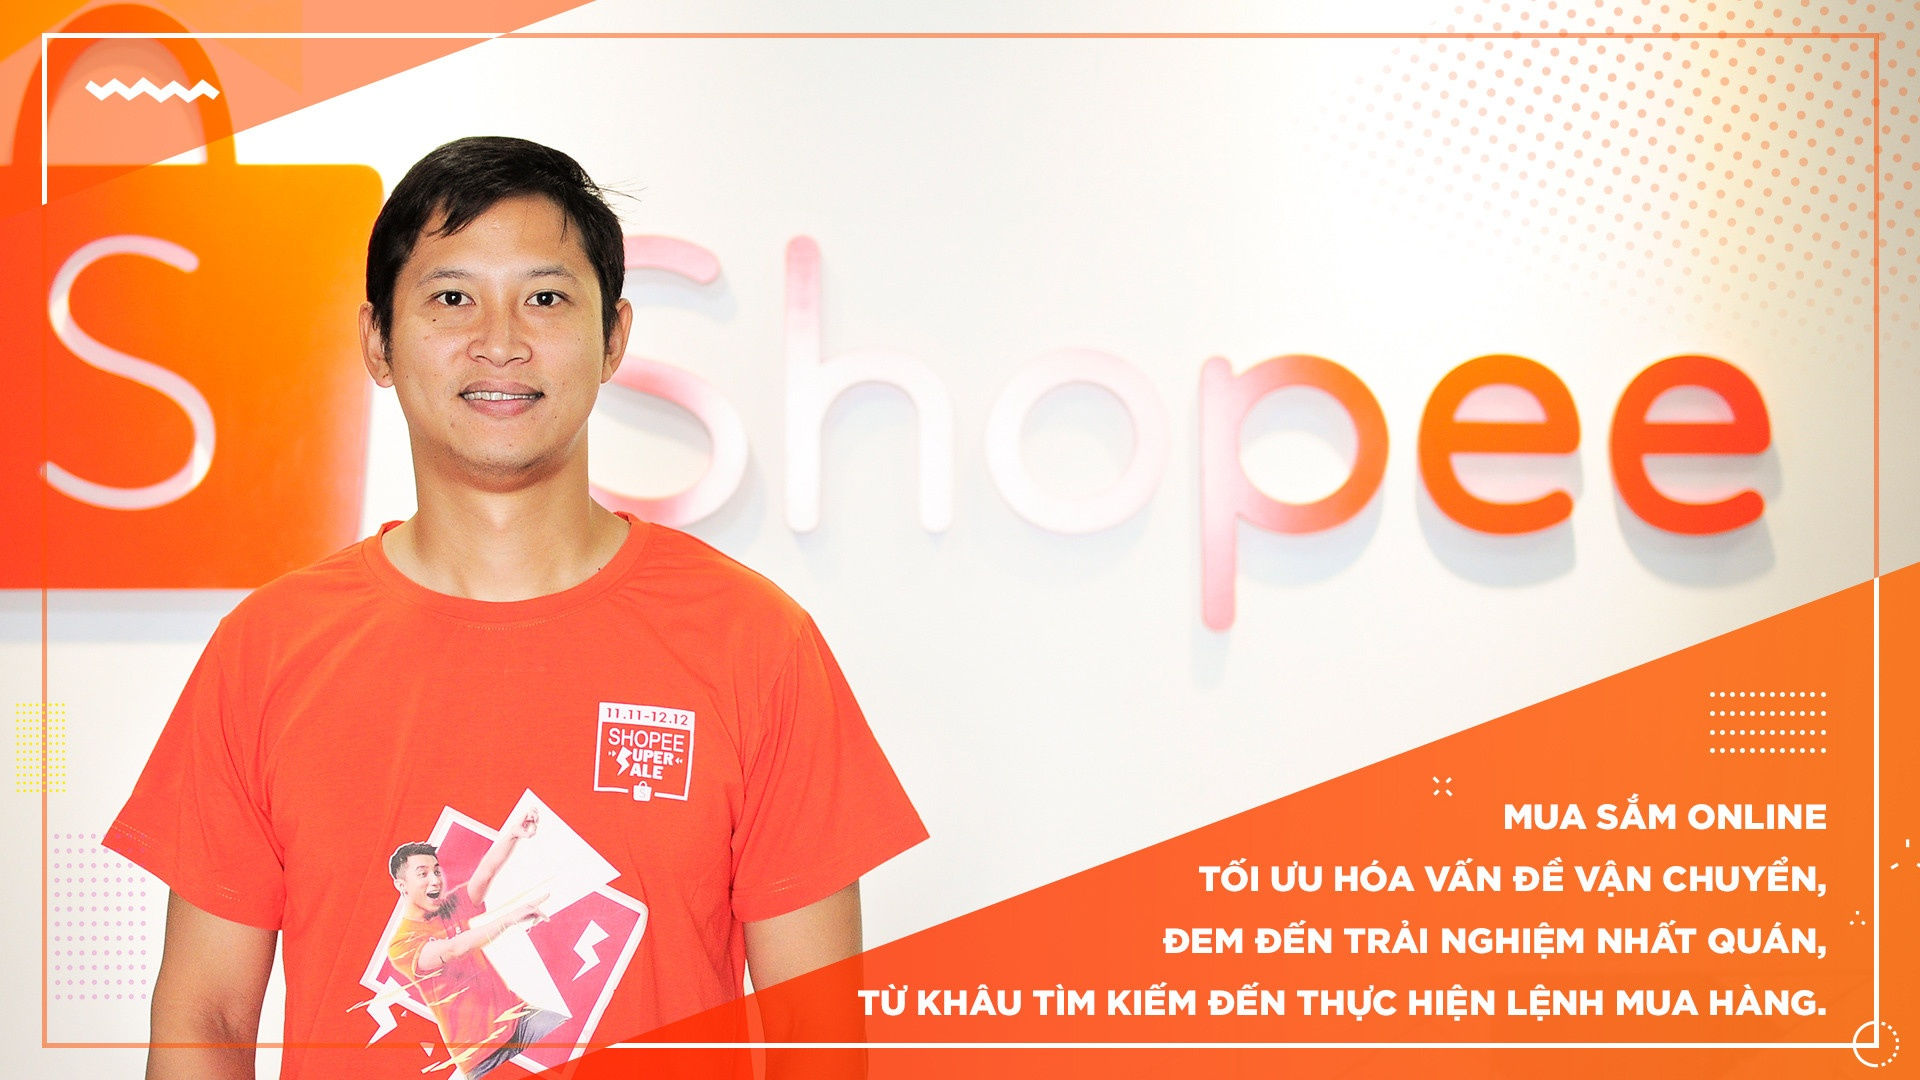 Shopee anh 4